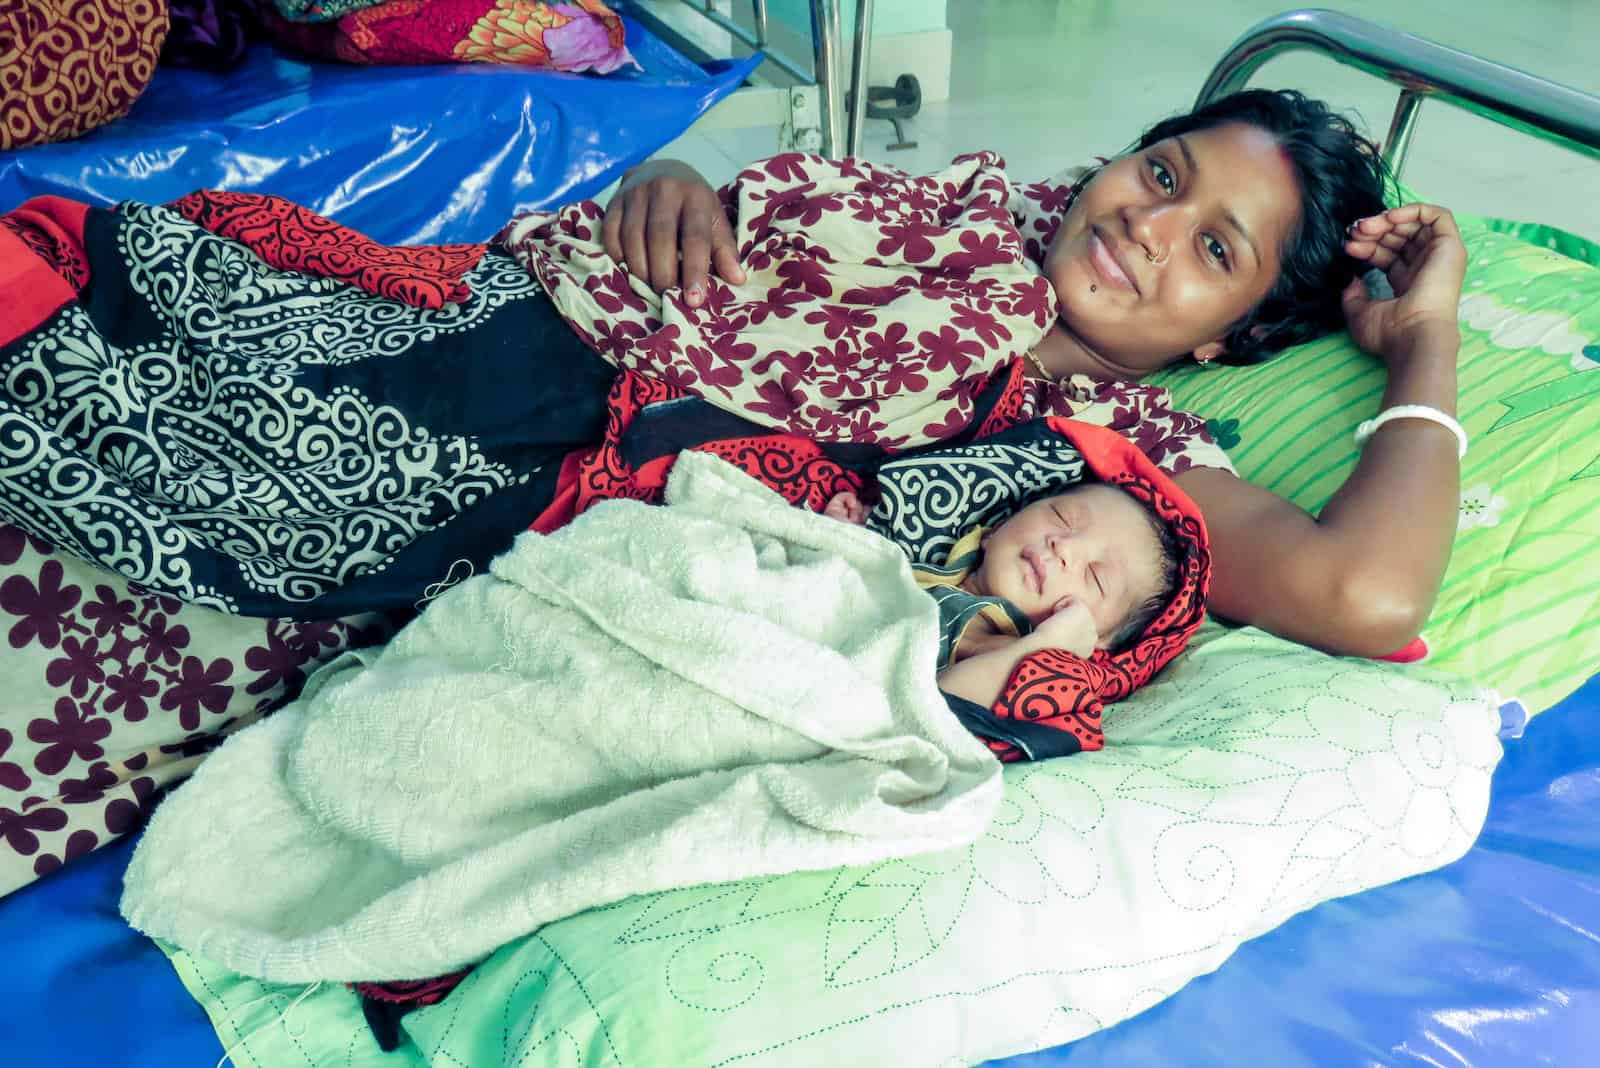 A mom and her baby lie in a hospital bed.